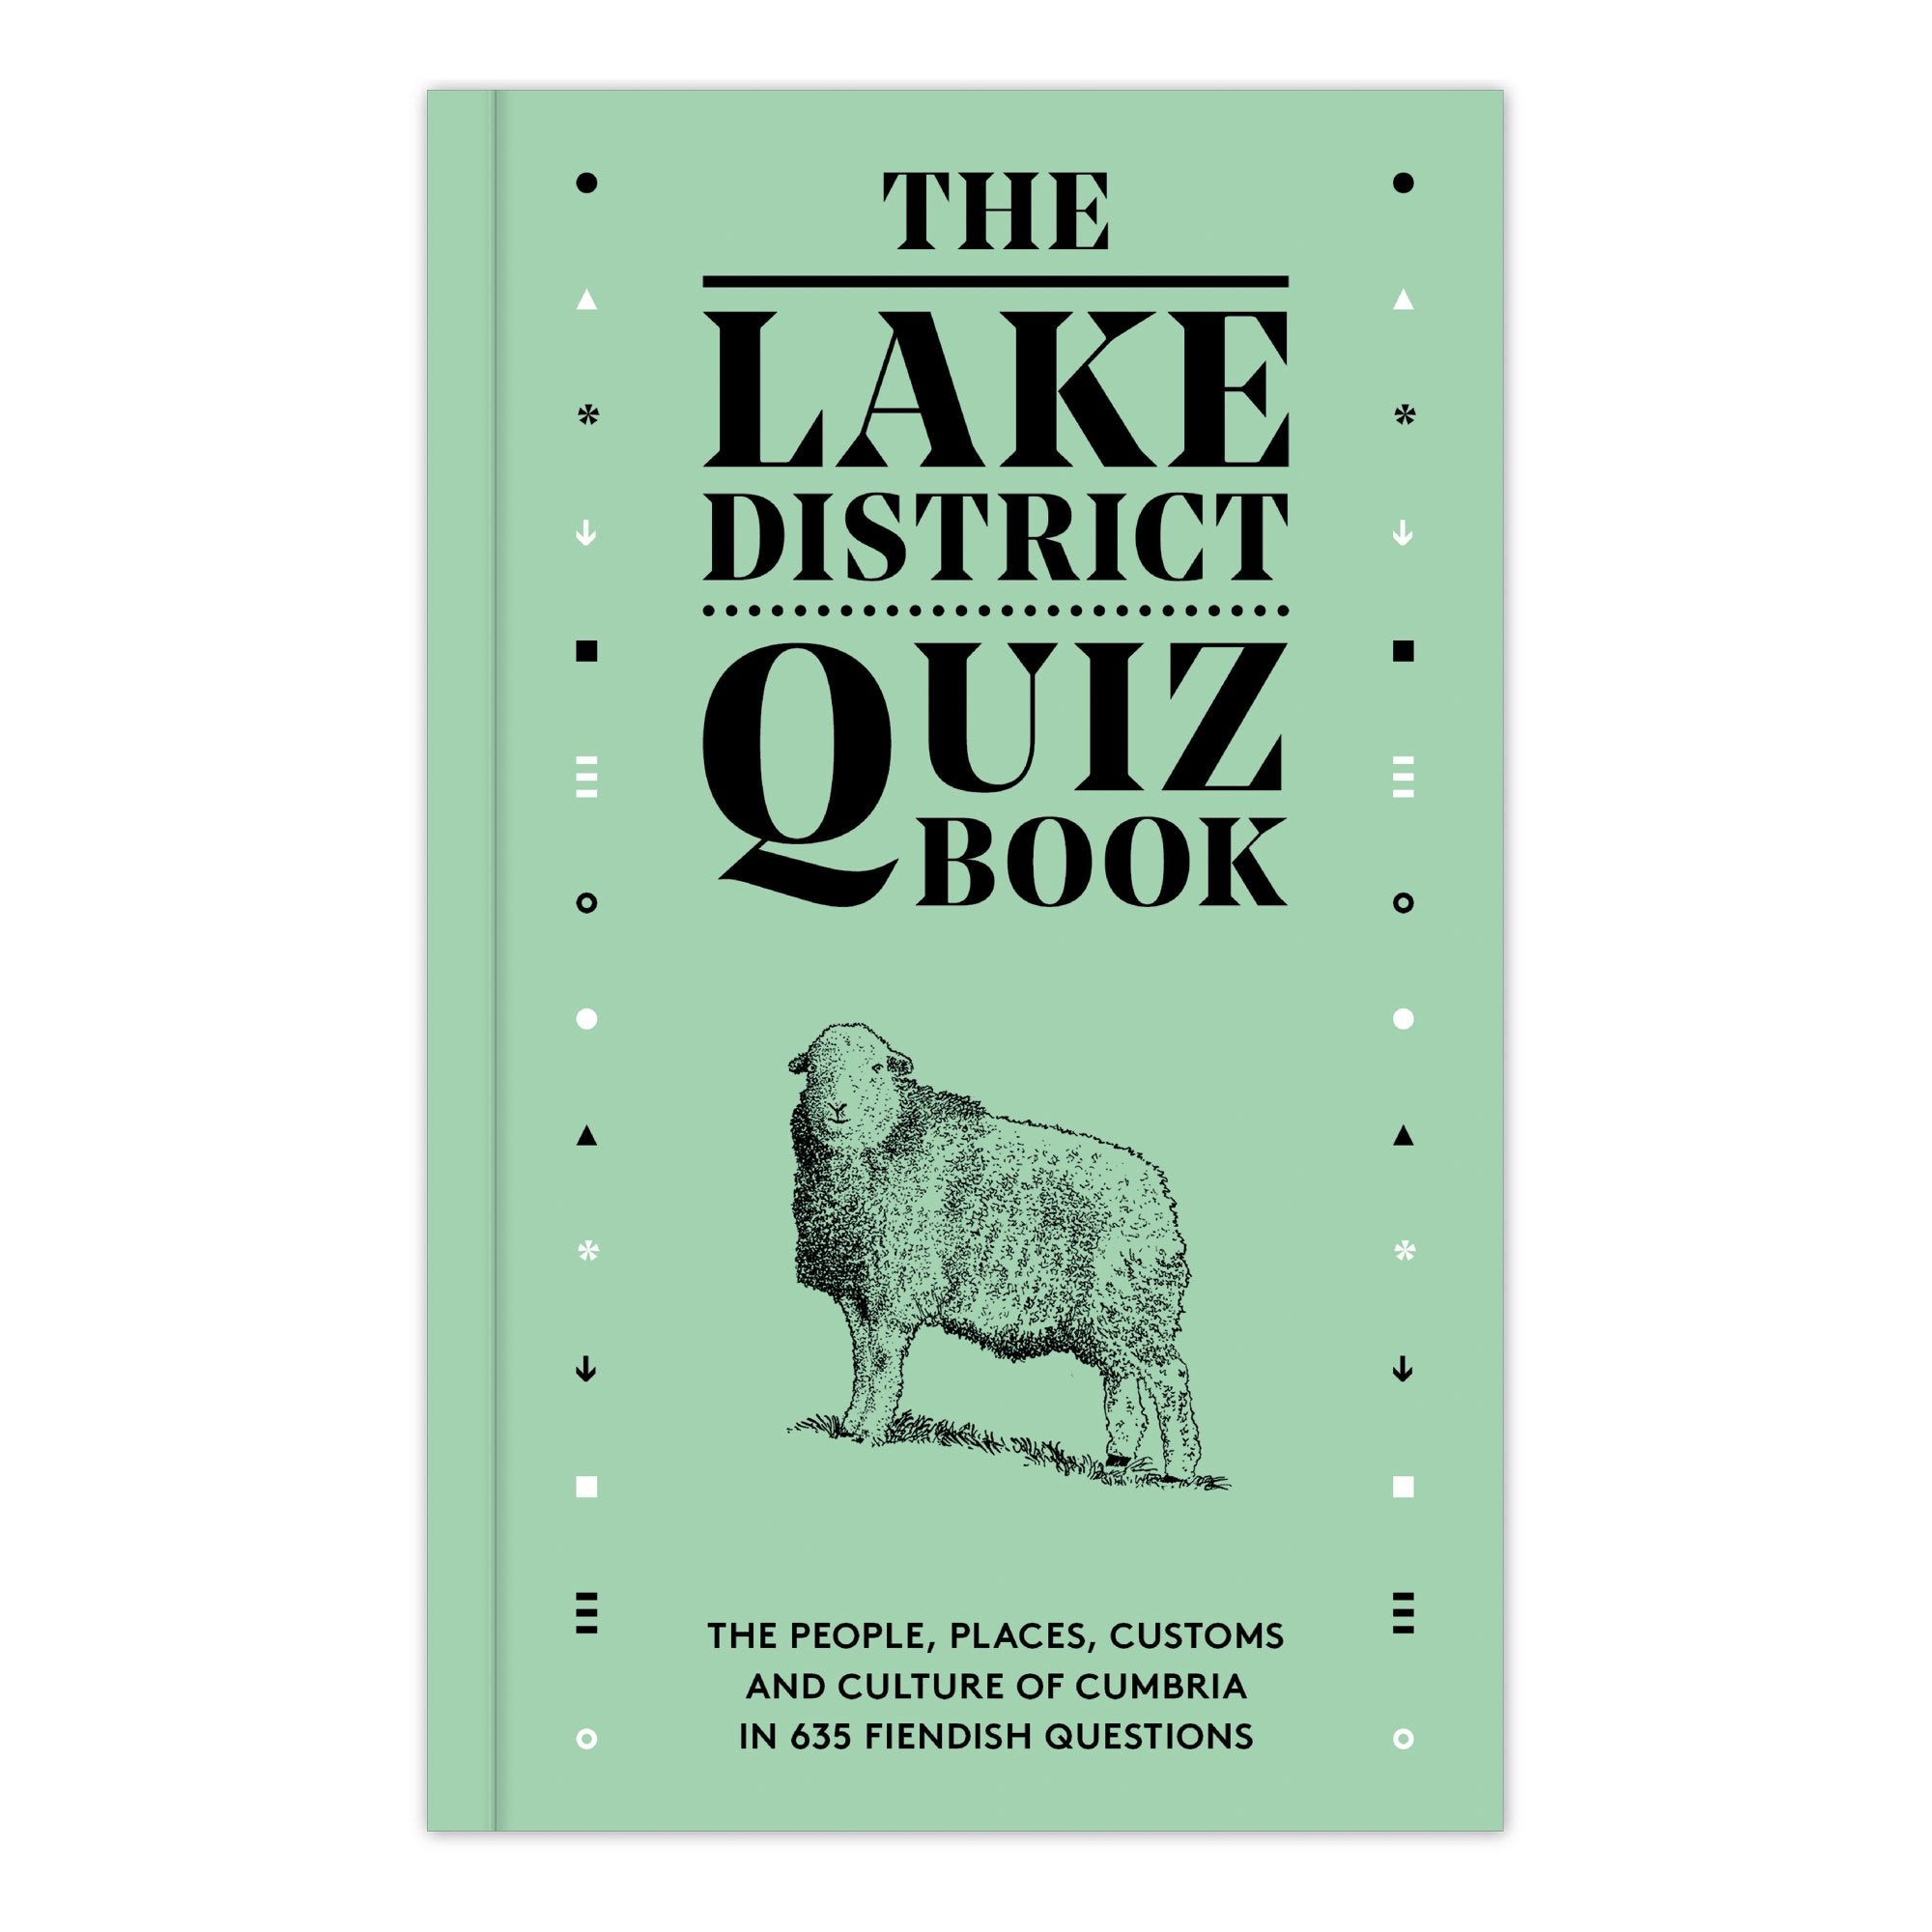 The Lake District Quiz Book